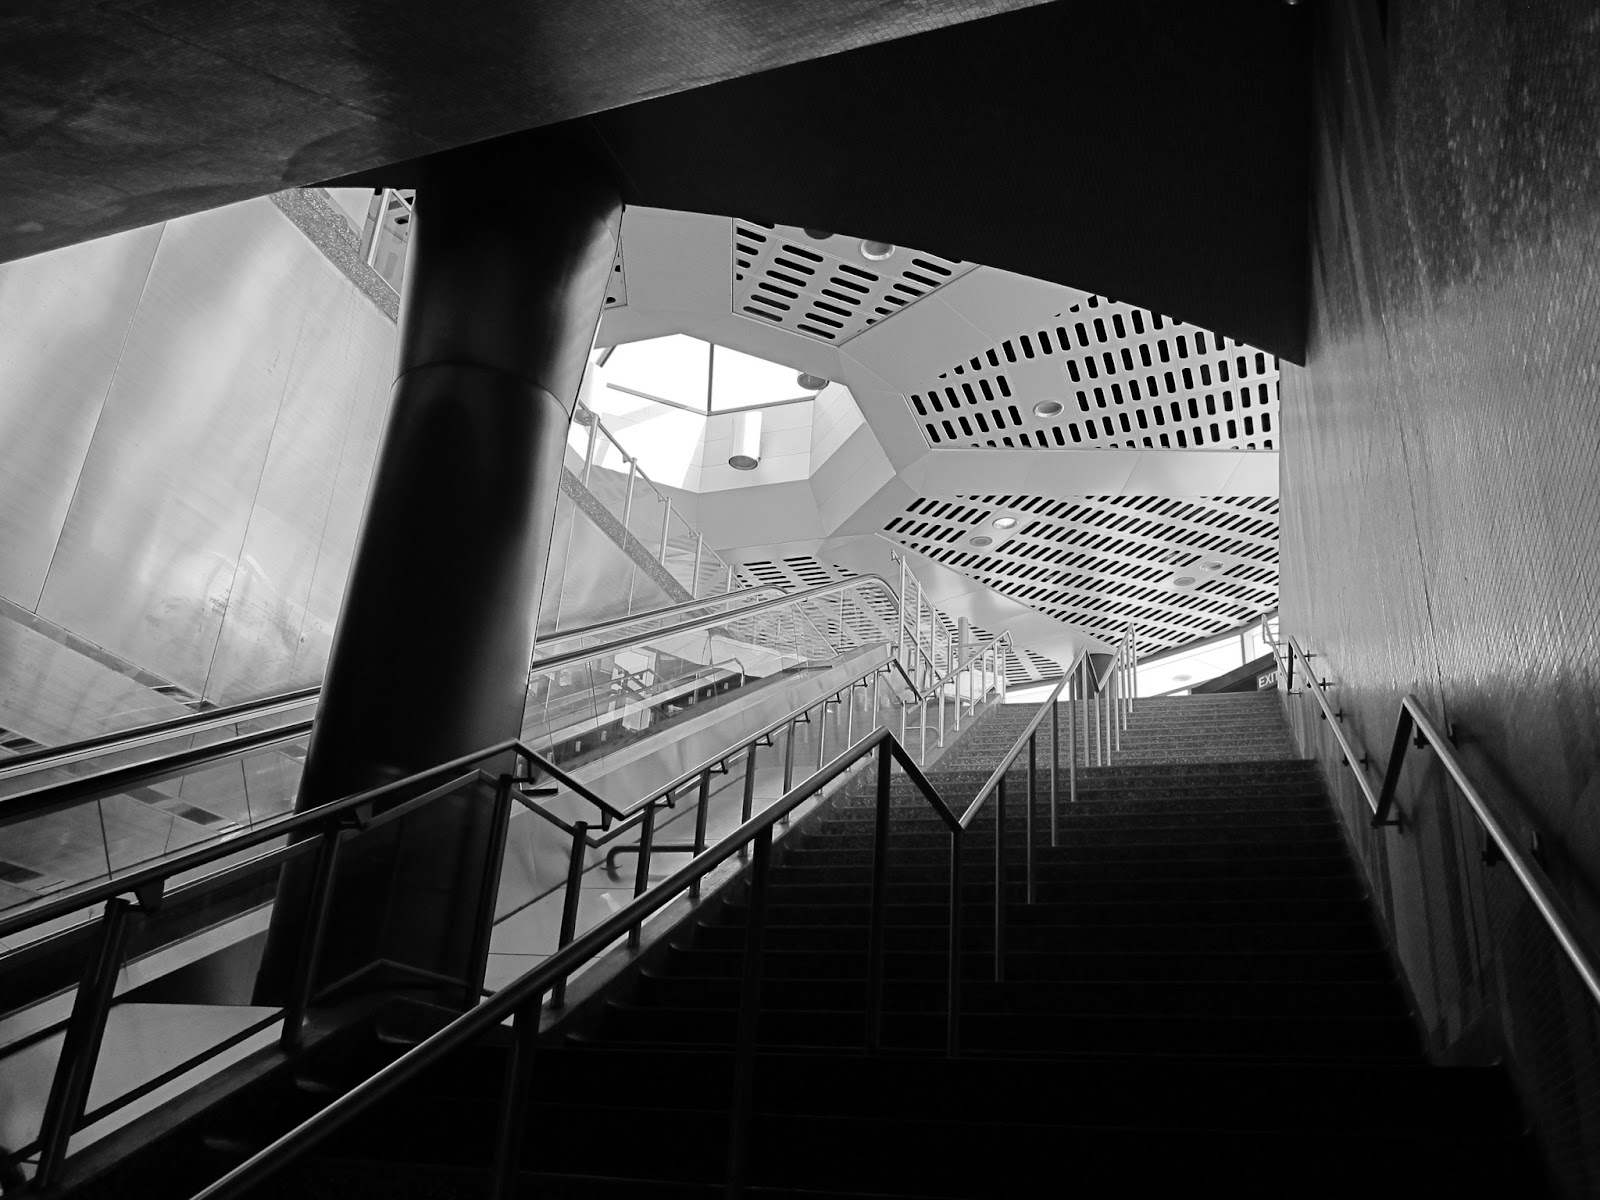 Photo: Stairwell to passenger pickup, Downsview station, Toronto